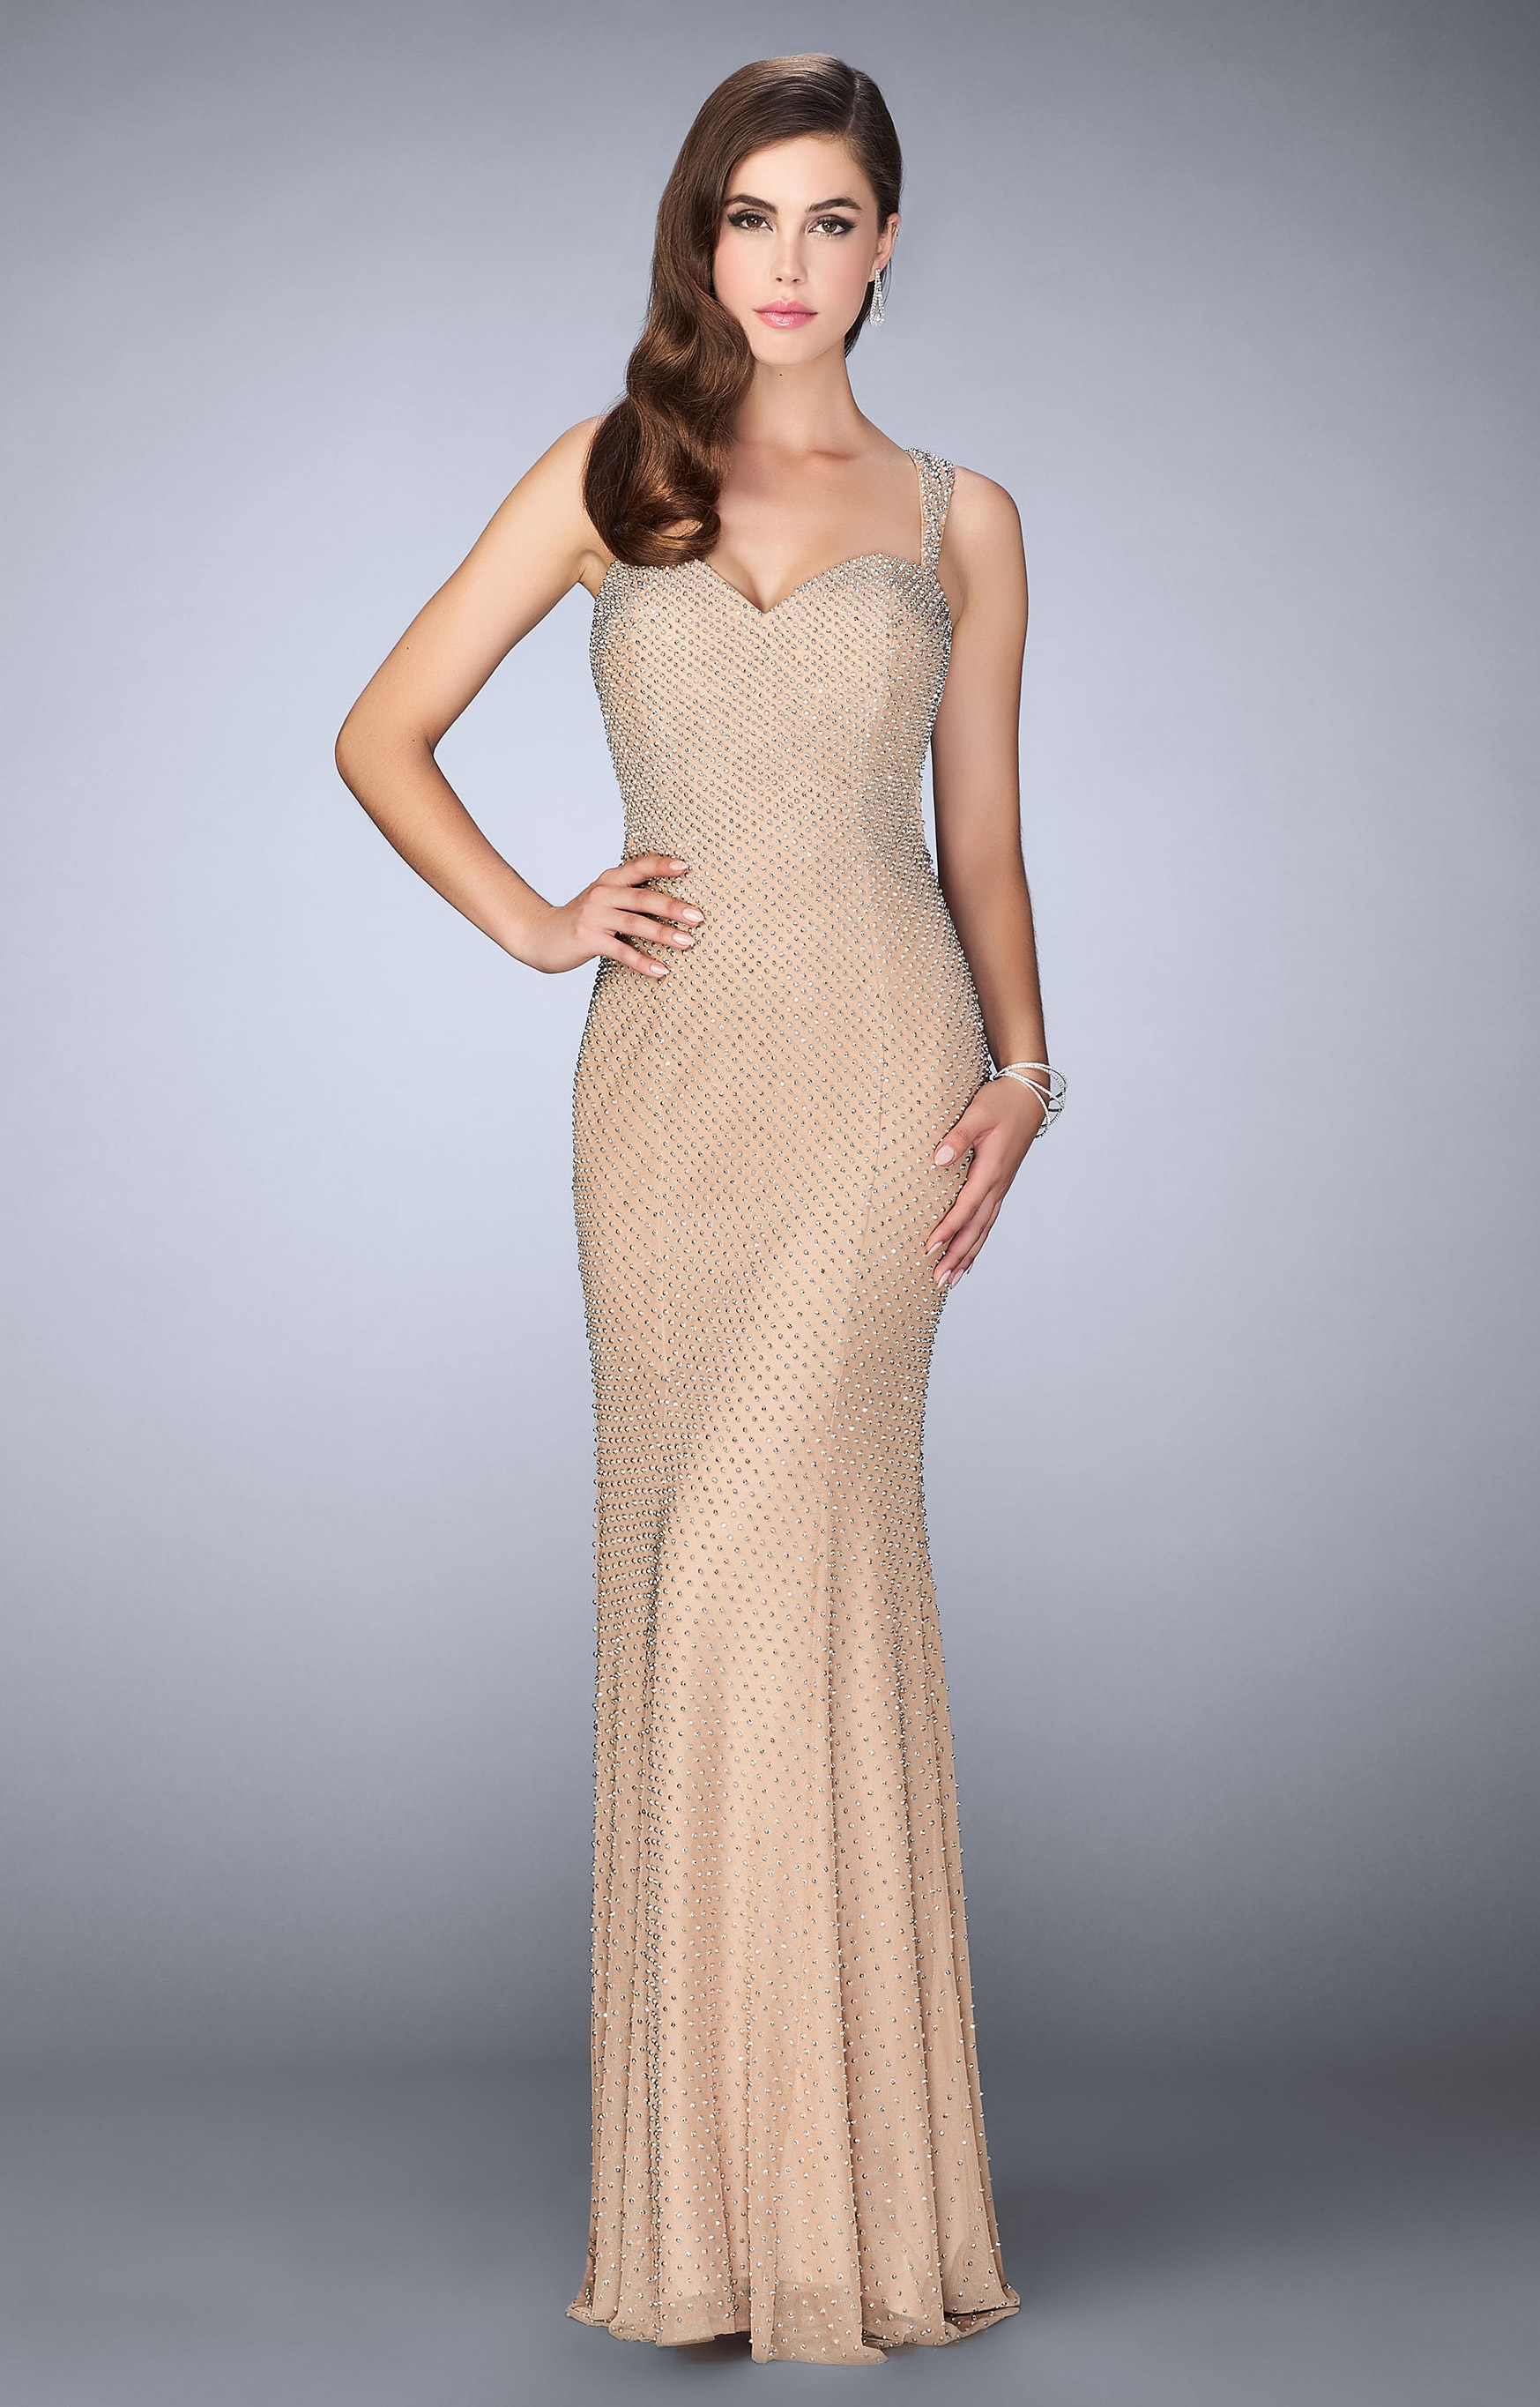 La Femme 23805 Jersey Knit Dress With Open Back Prom Dress